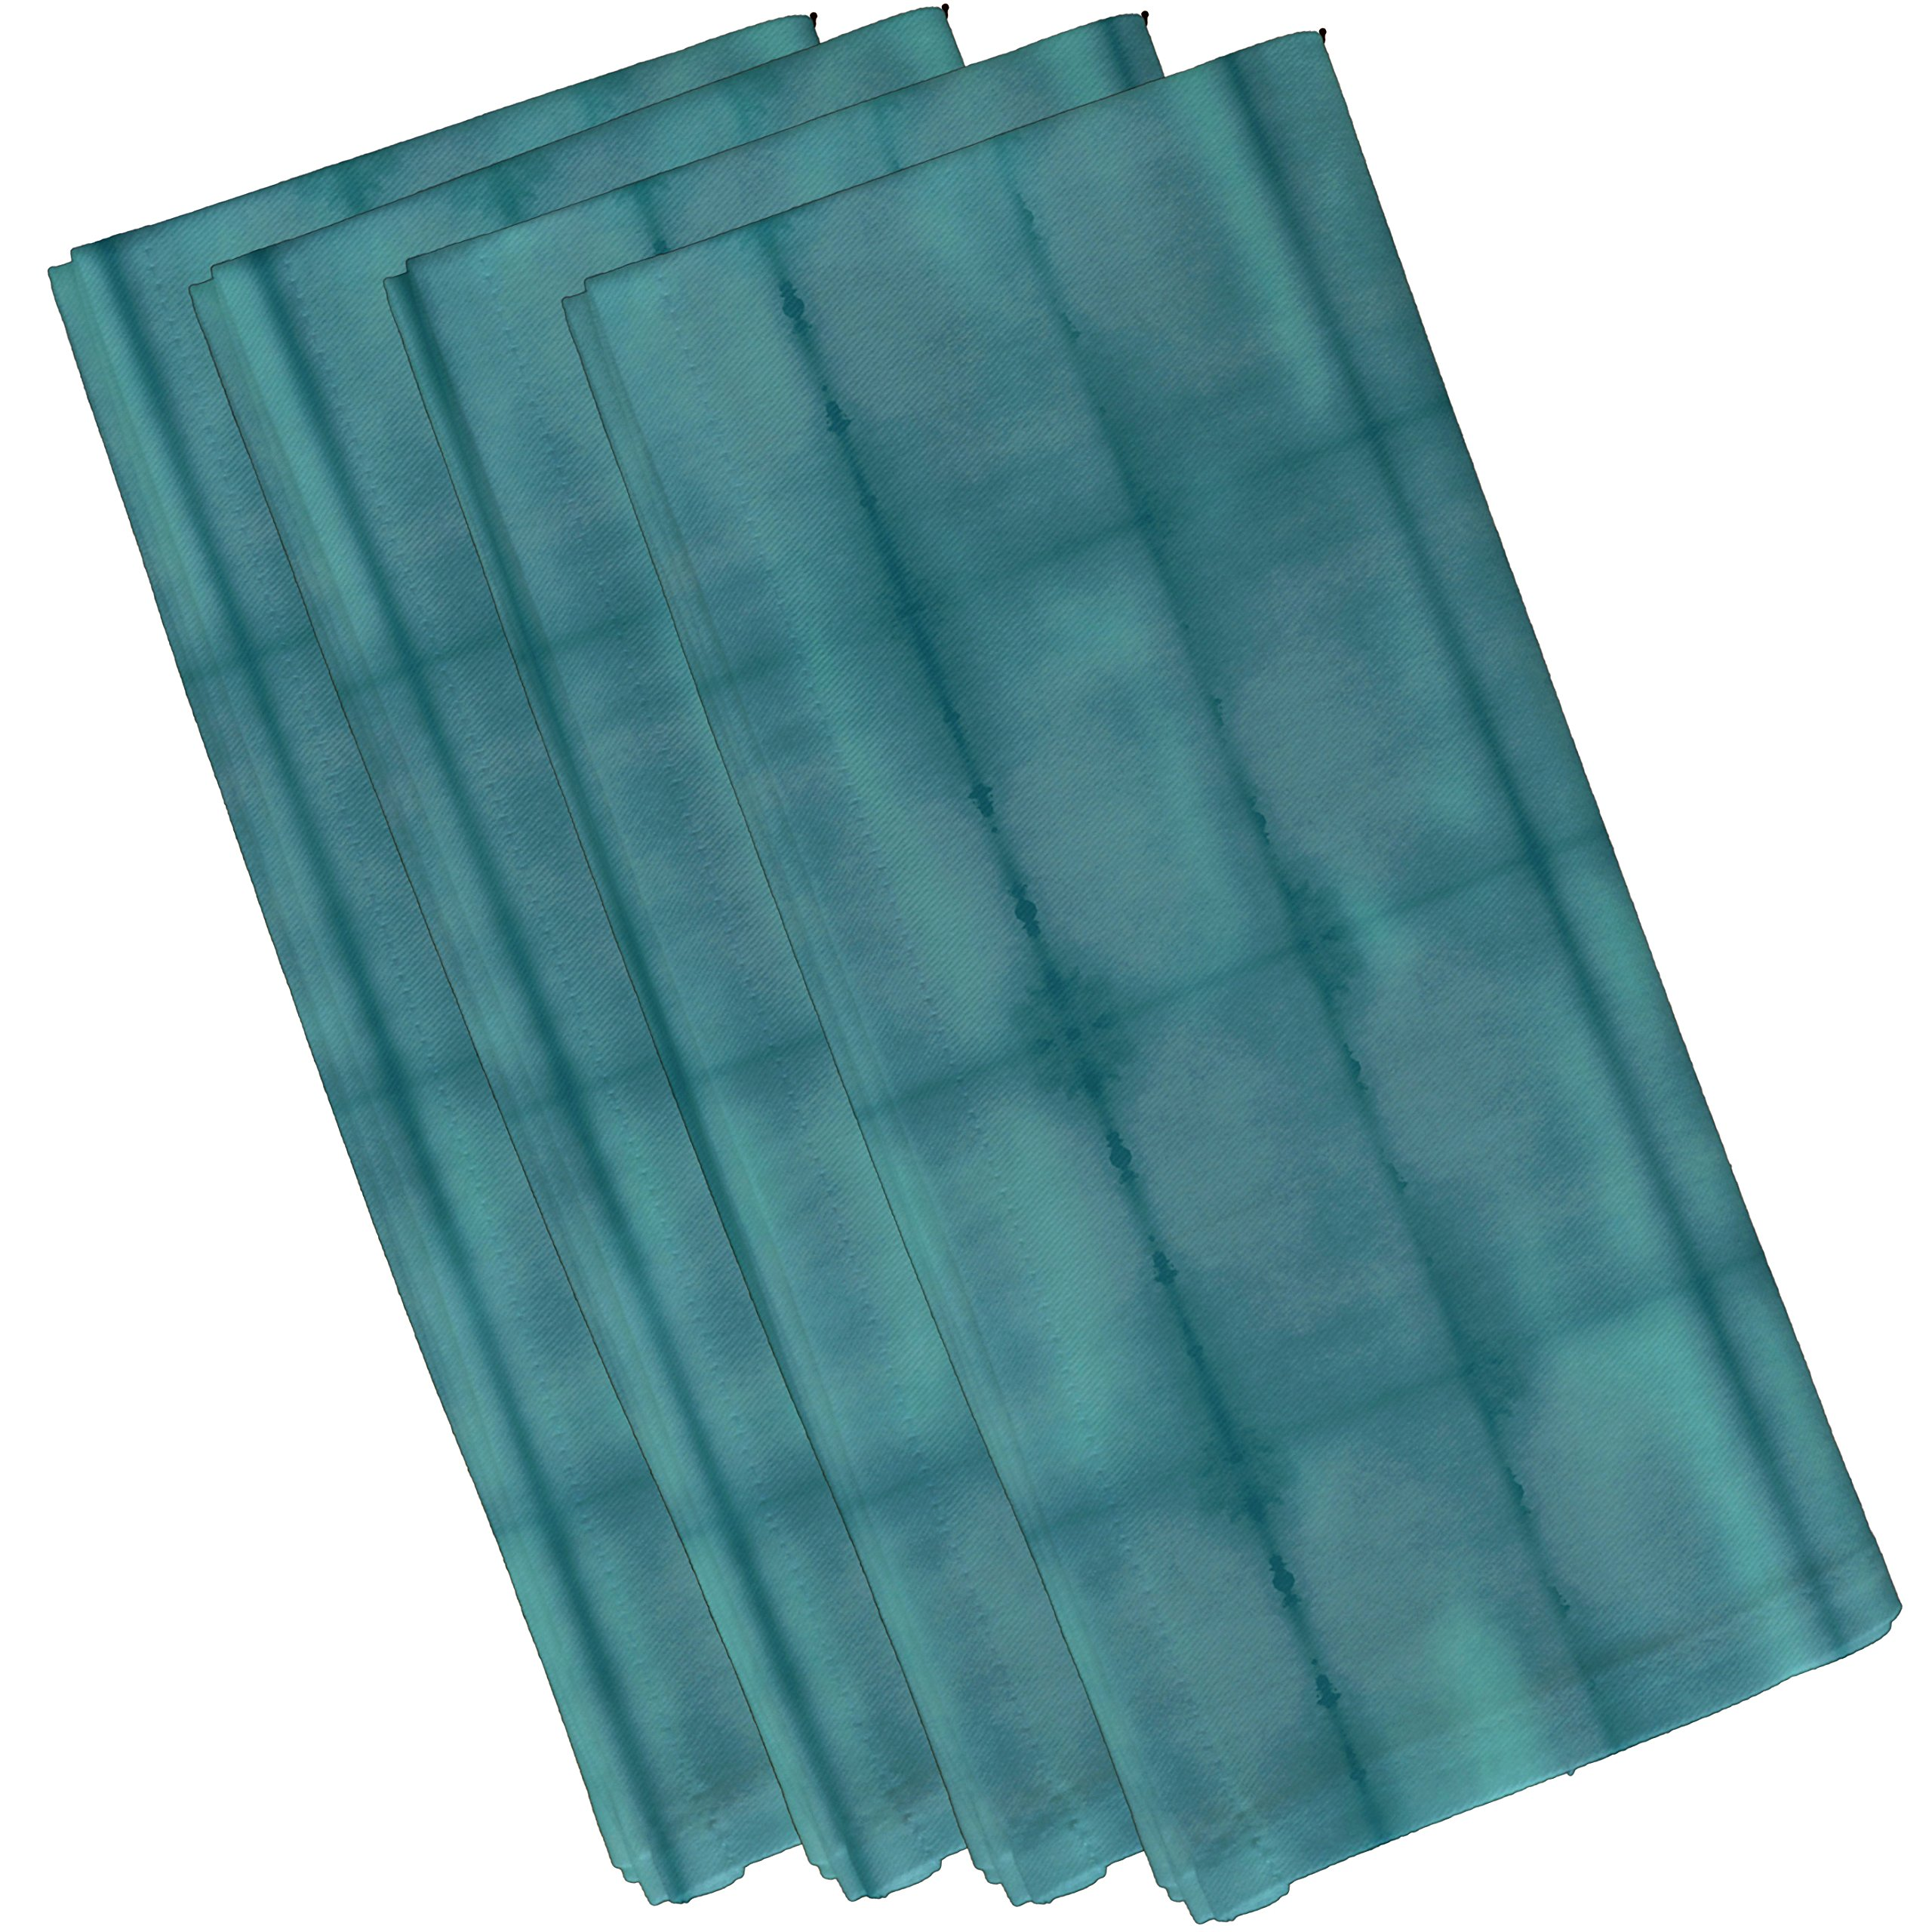 E by design N4S777BL37 Pool Stripe Print Napkin (Set of 4), 19'' x 19'', Teal by E by design